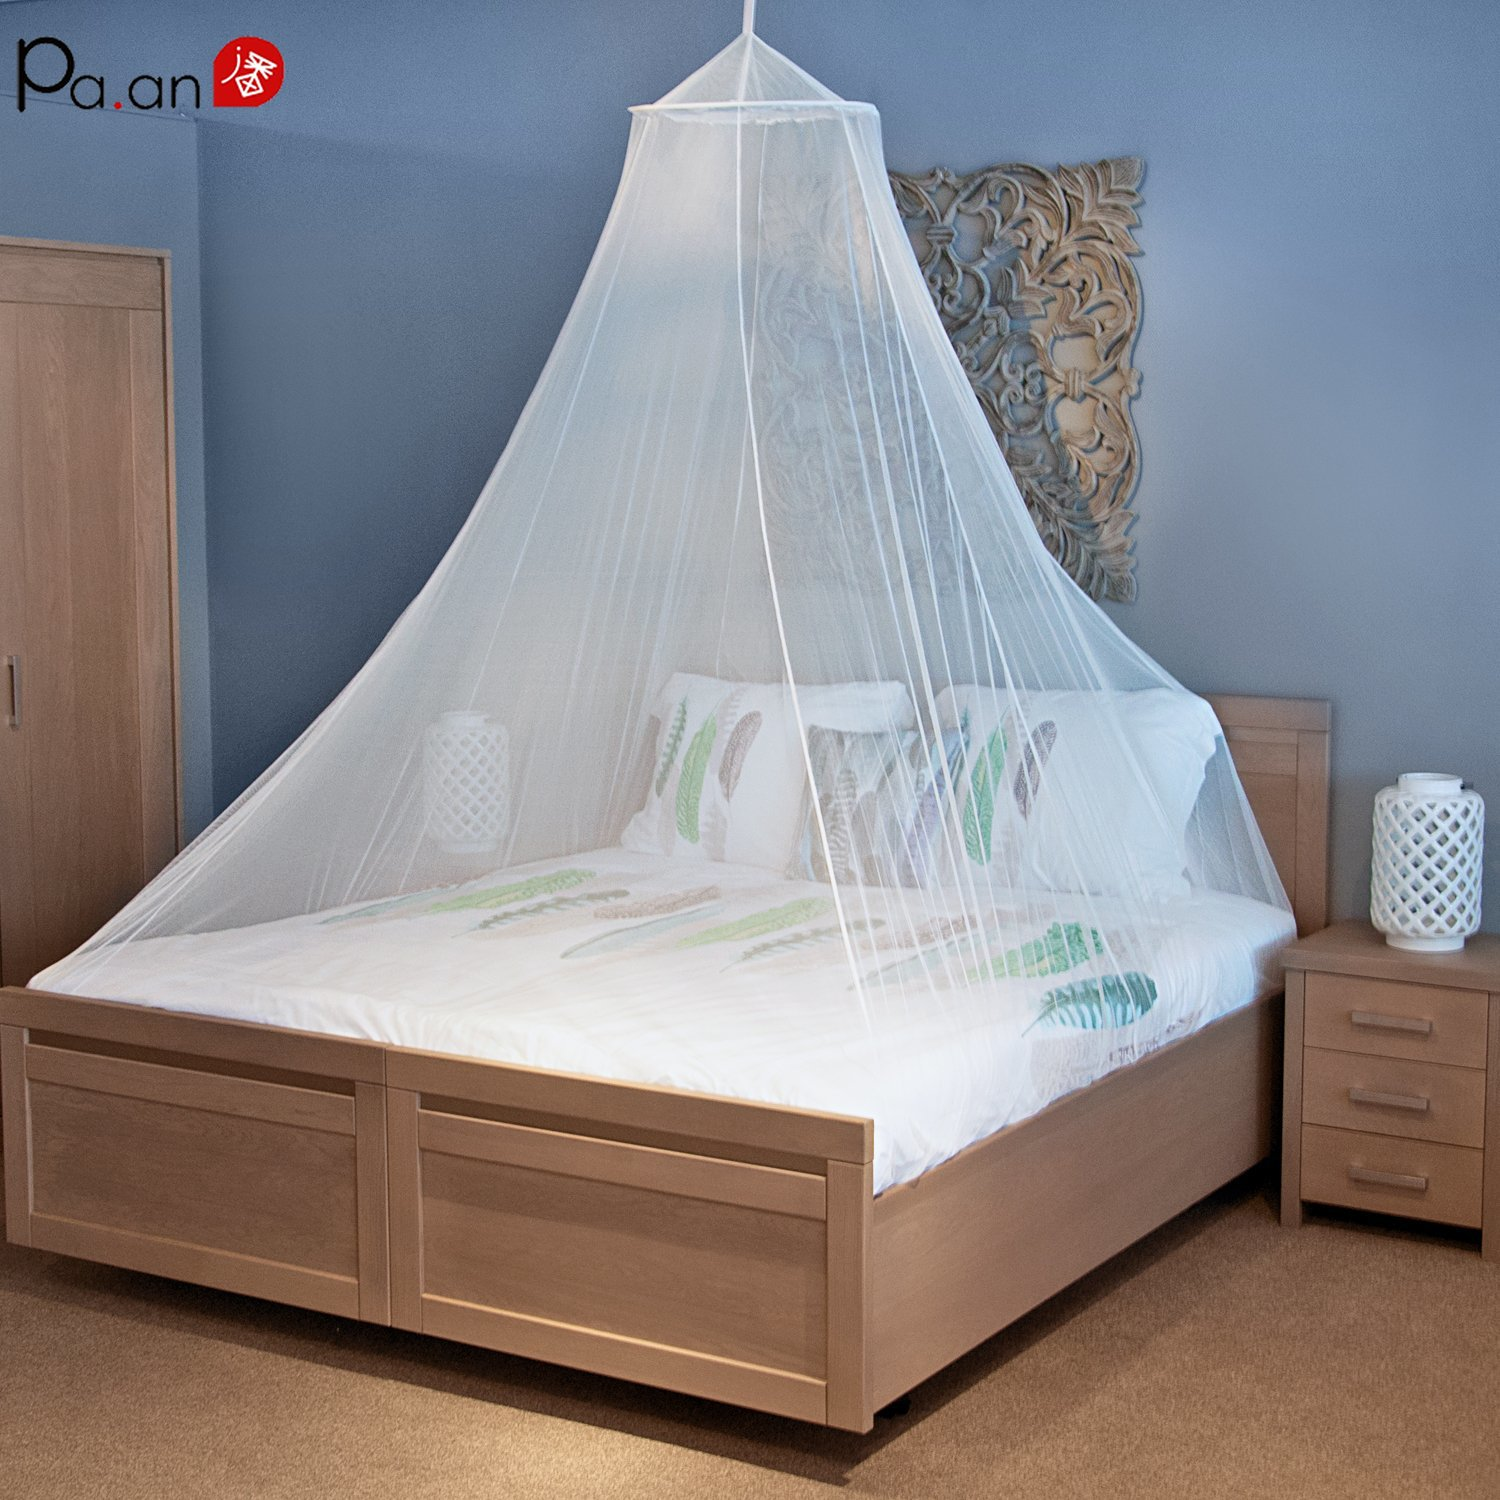 Fully Enclosed Bed Net Mosquito Tent Round Dome Canopy Beds Kids Girls Room Decor Ultra Light and Stretchy Dropshipping 2019 in Mosquito Net from Home Garden